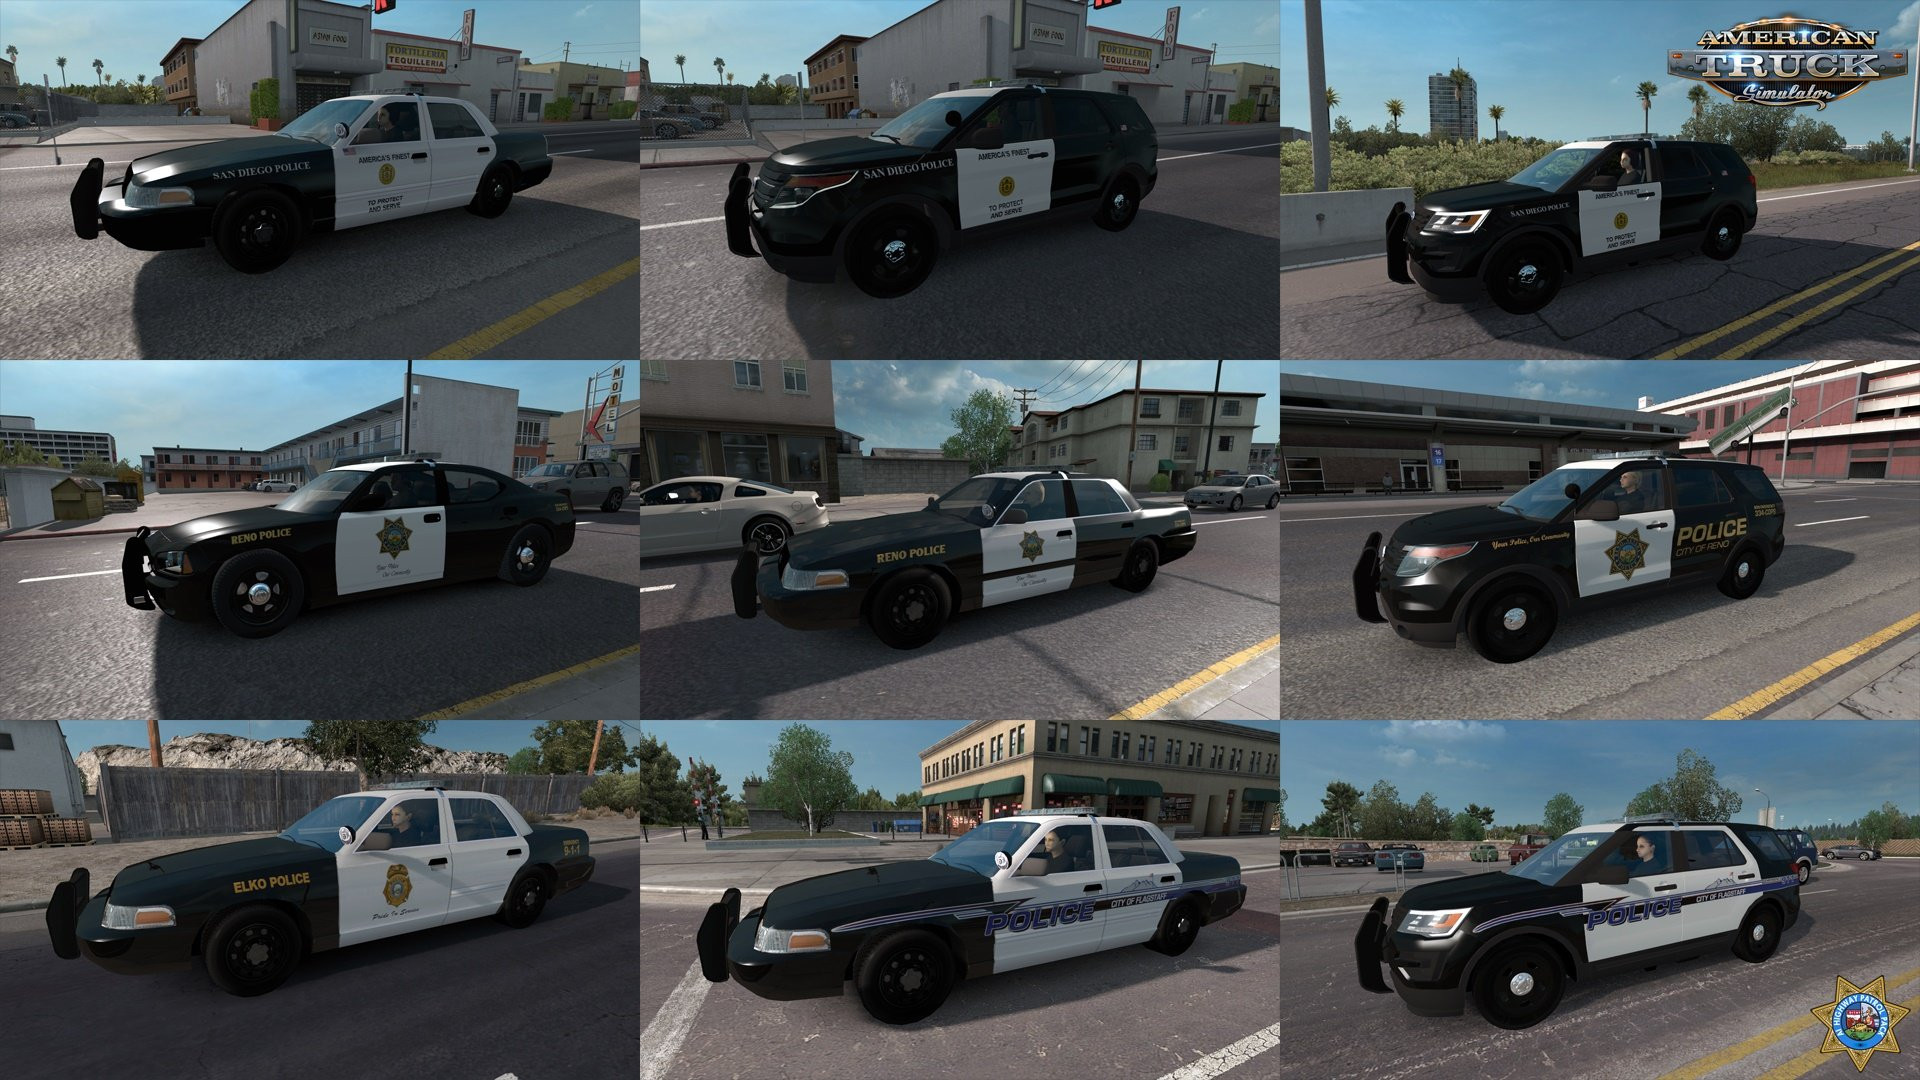 State Highway Patrol v1.42 for Ats